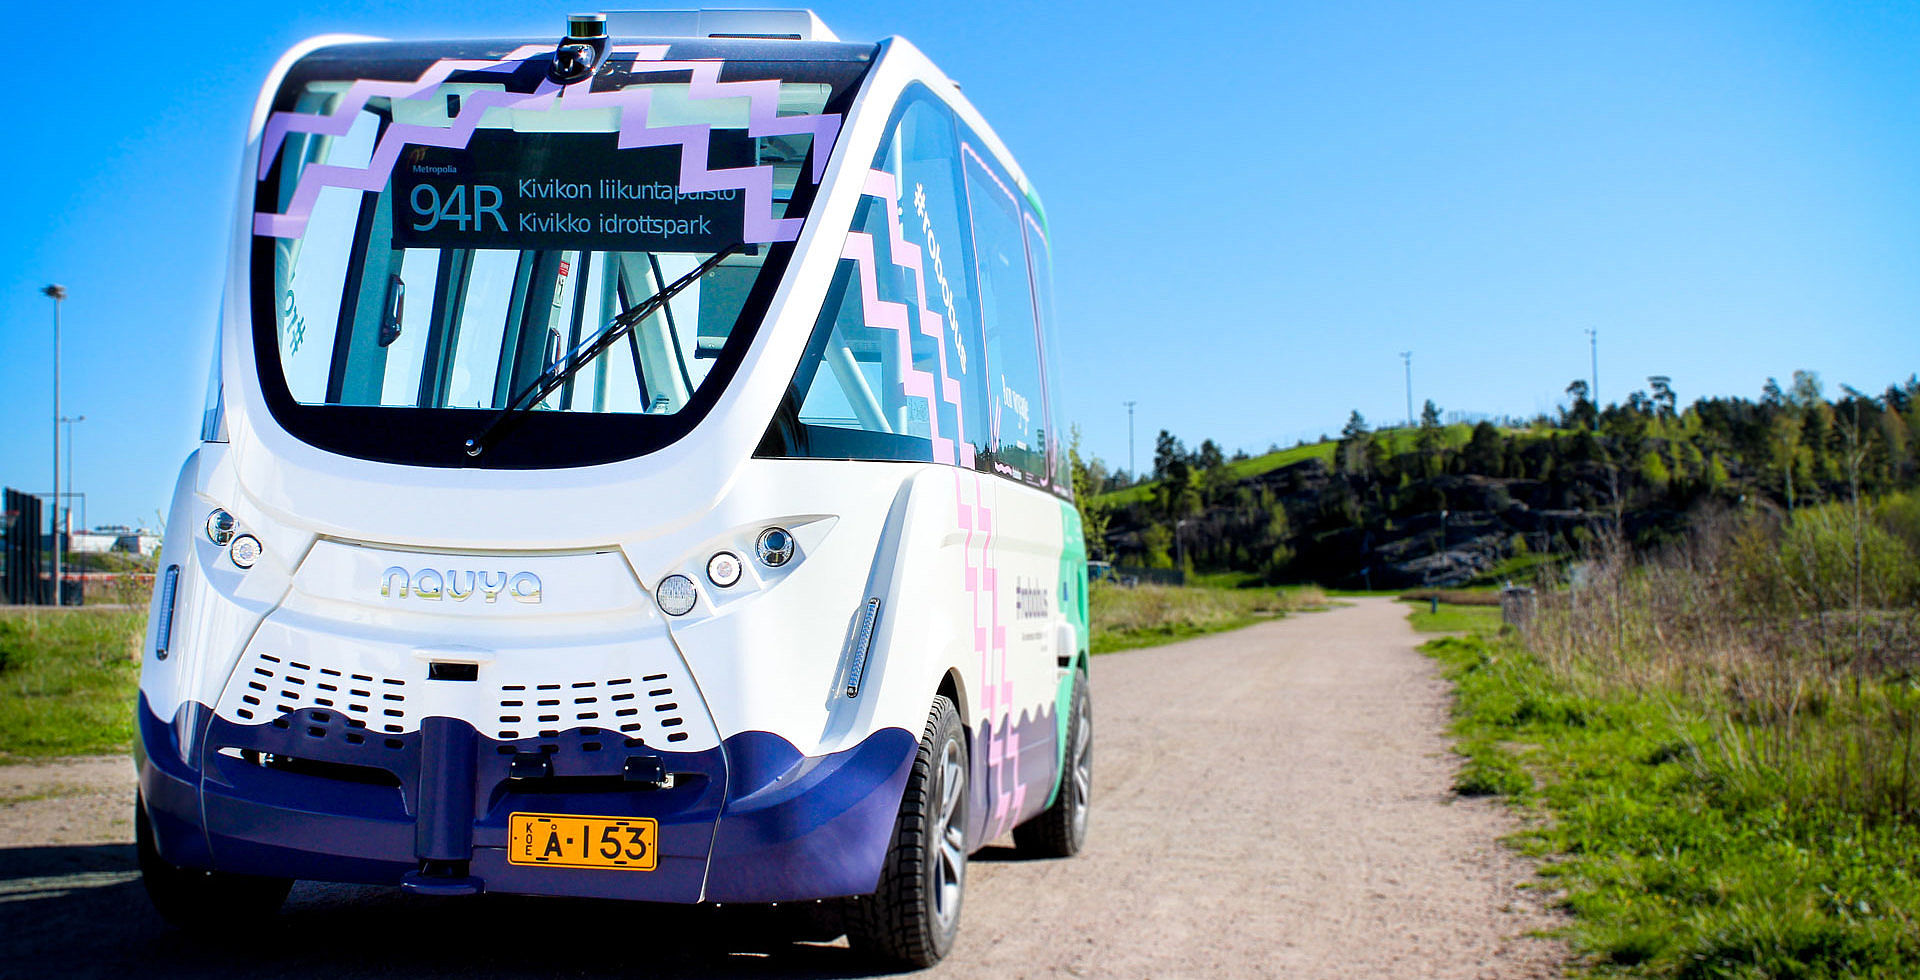 The self-driving electric minibus of Helsinki bus line 94R (picture: Milla Aman/Oscar Nissin)